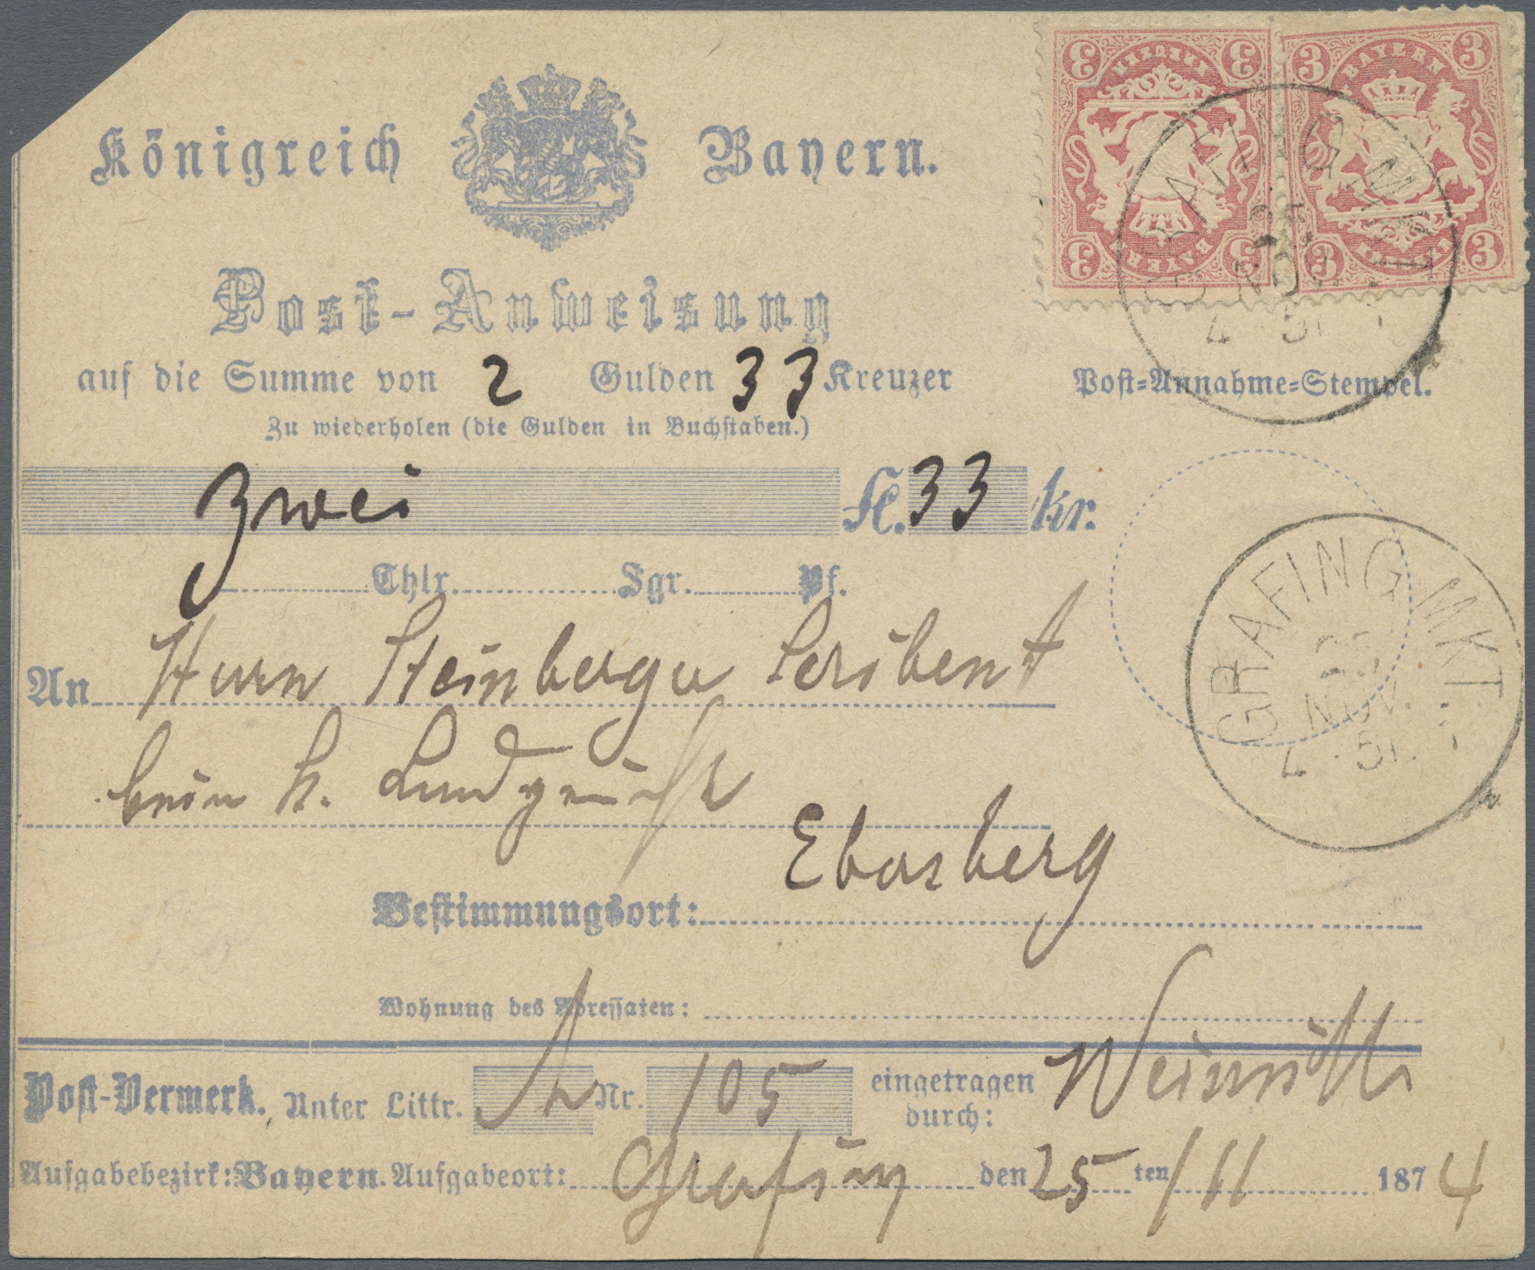 Lot 05705 - Bayern - Marken und Briefe  -  Auktionshaus Christoph Gärtner GmbH & Co. KG Special Auction 26.- 28. May 2020 Day 3 Single Lots